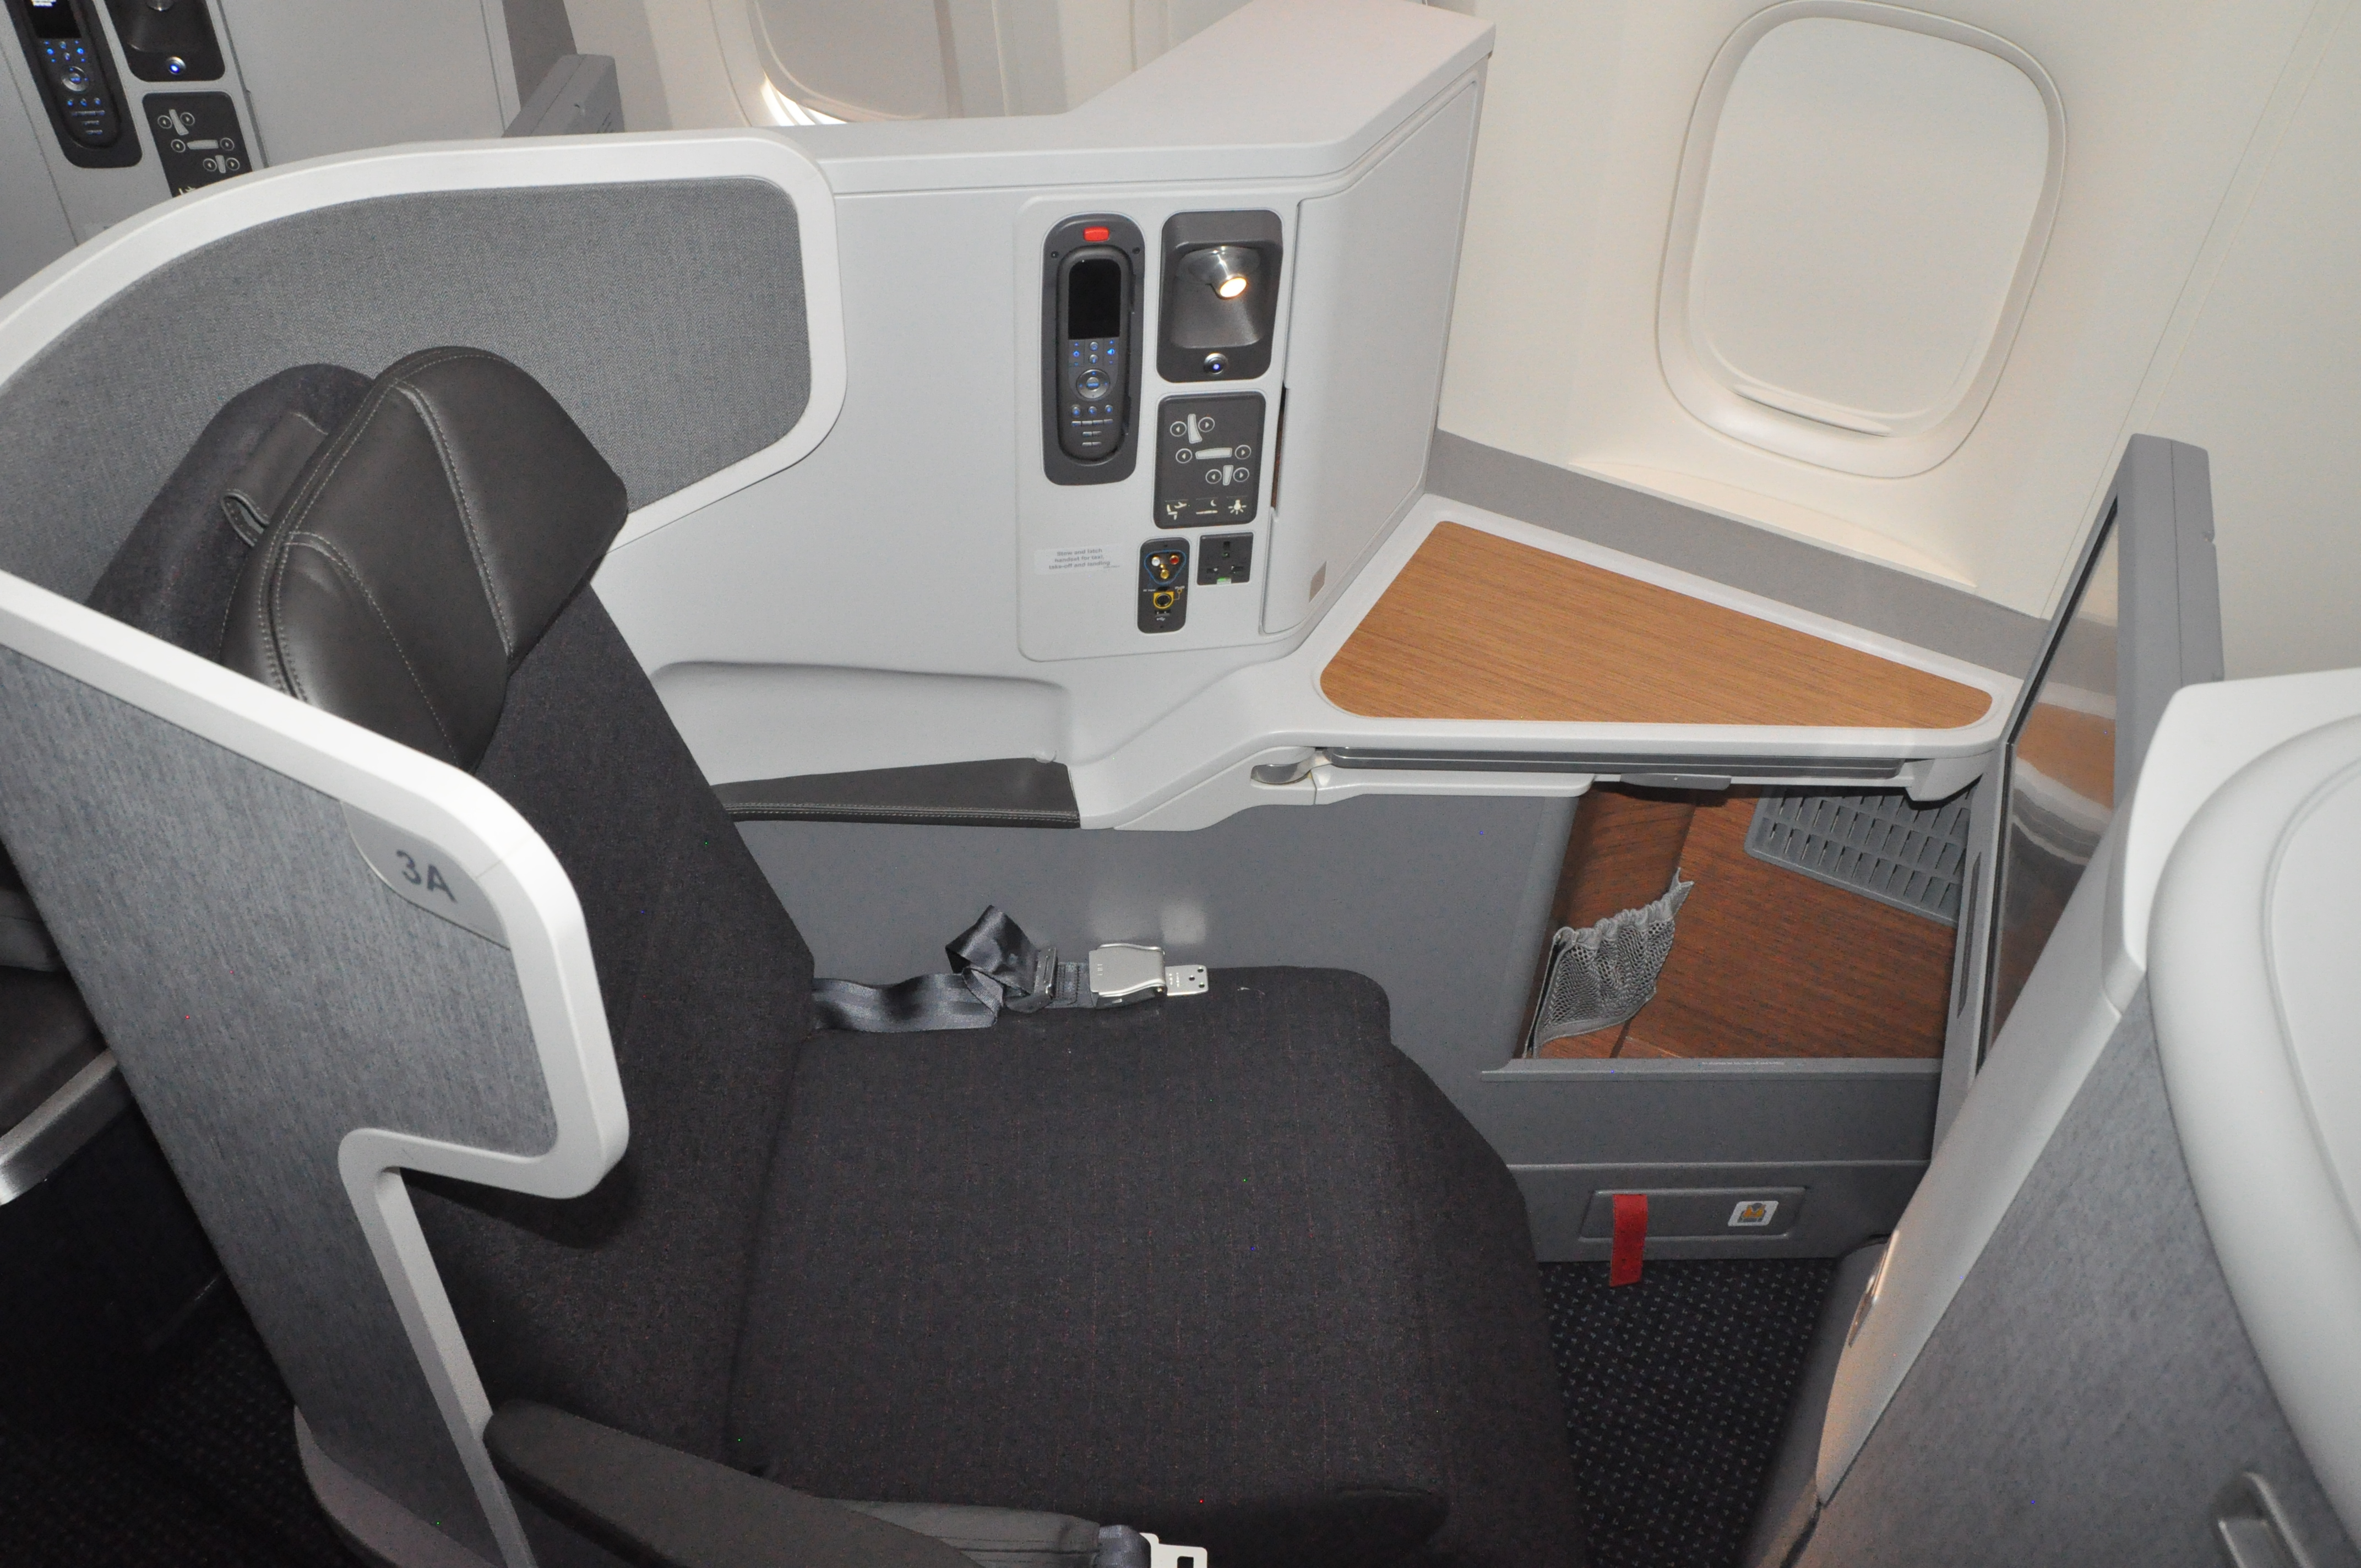 Checking Car Seats American Airlines